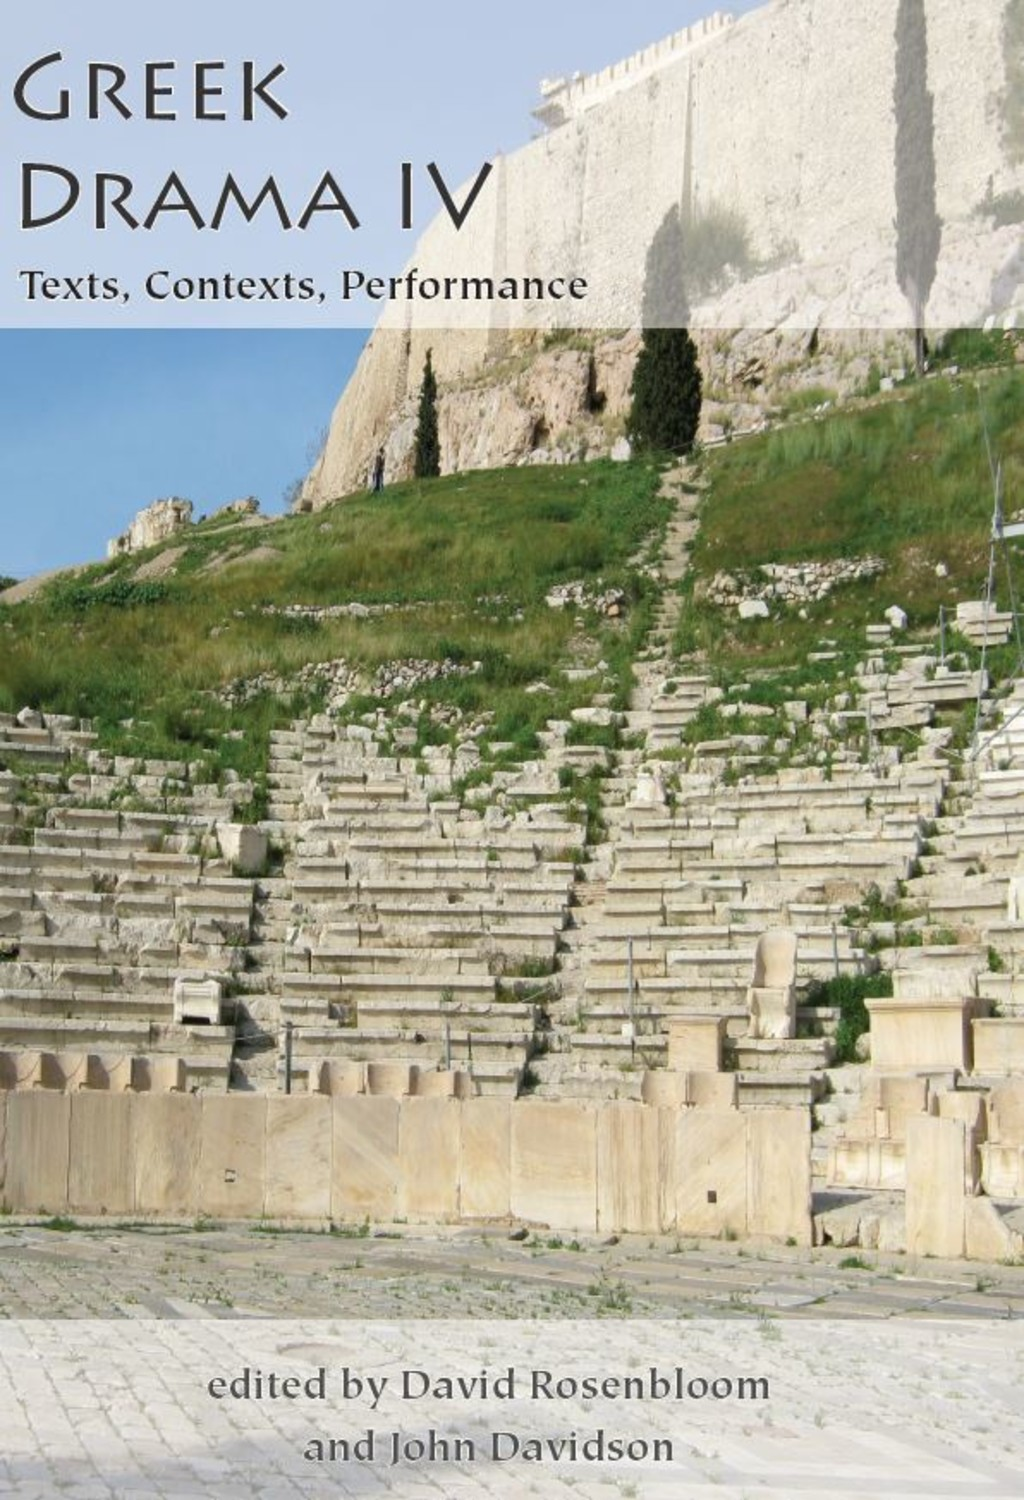 Greek Drama IV: Texts, Contexts, Performance